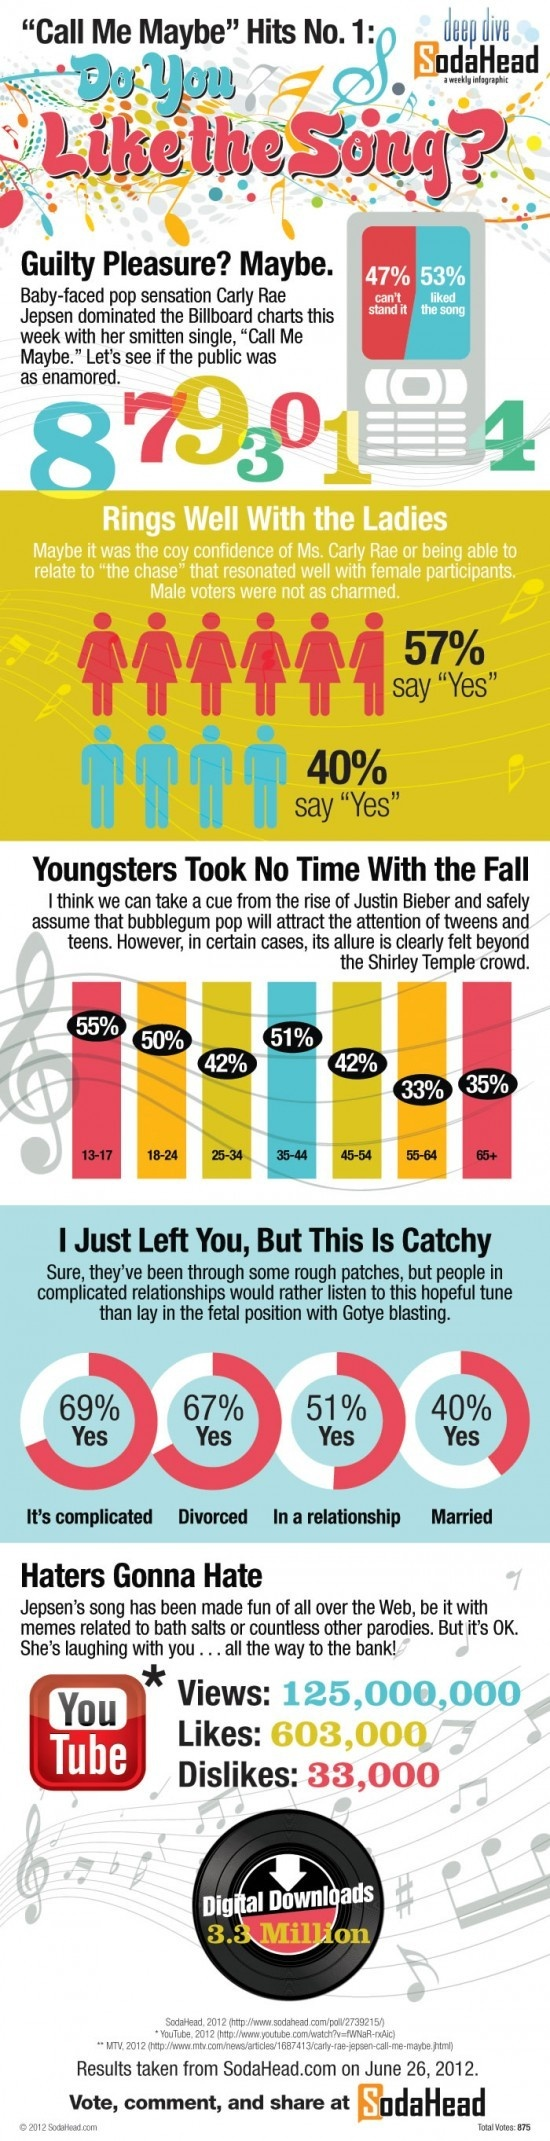 "INFOGRAPHIC: THE PUBLIC KIND OF LIKES 'CALL ME MAYBE' Just because a song takes off, doesn't mean it's automatically a great jam. Take Justin Bieber's ""Baby,"" for instance. Or Rebecca Black. Radio is chock full of unfortunate hits. But ""Call Me Maybe"" by Carly Rae Jepsen has a unique charm about it. It's nothing more than bubblegum pop, but it's so unbelievably catchy, it's almost… good. We asked the public to weigh in. Let's dive."